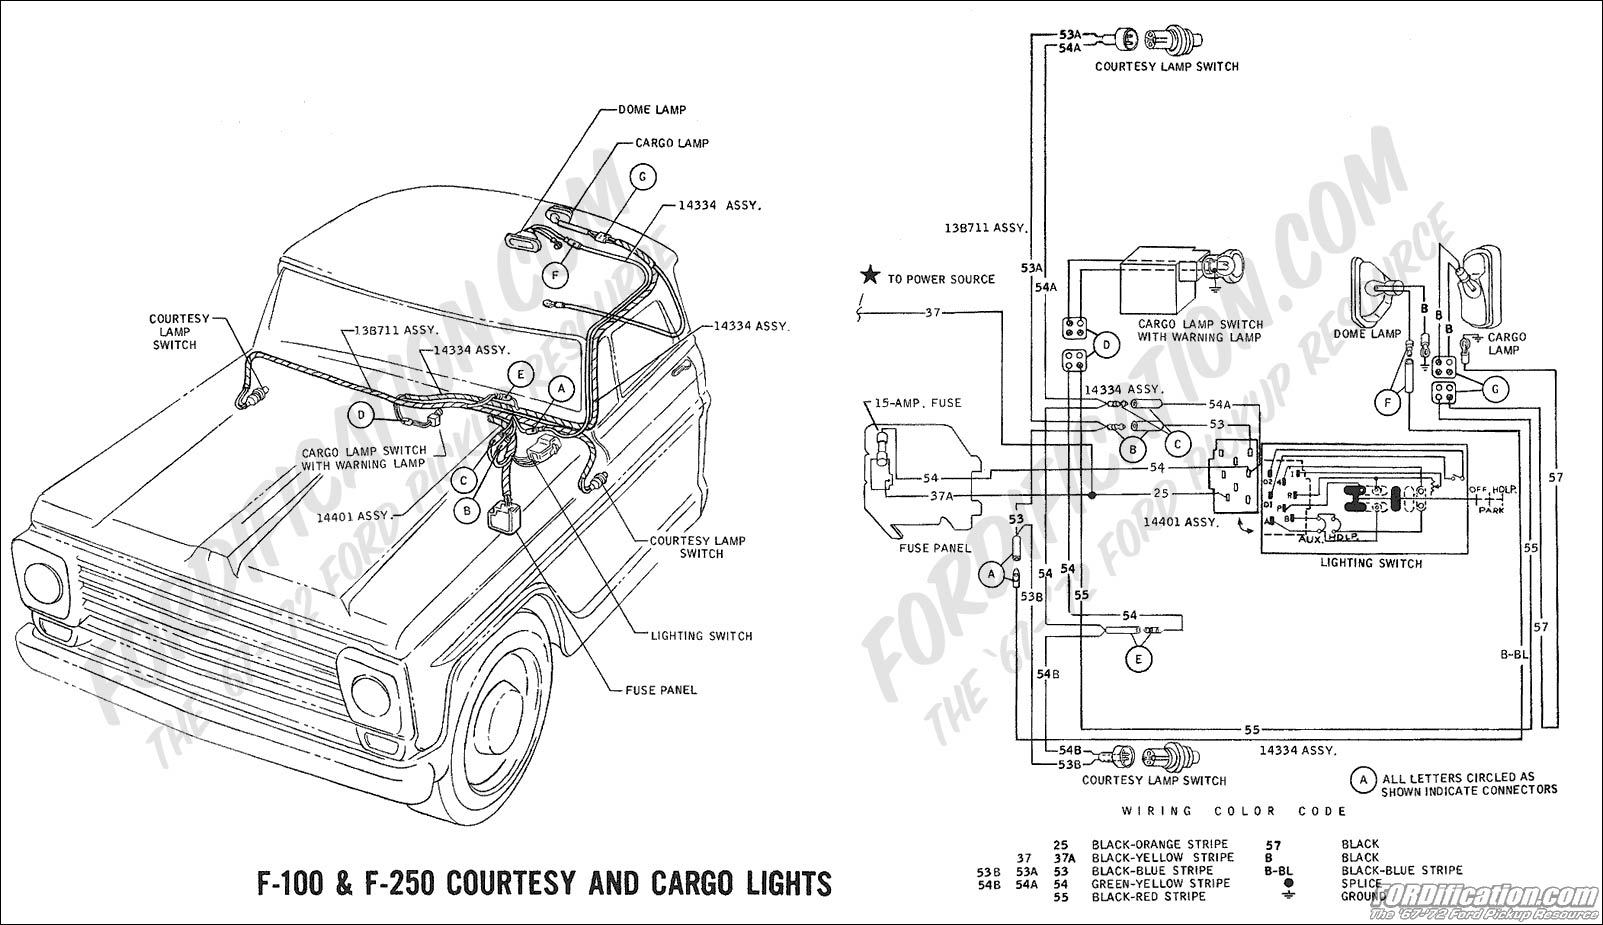 1977 Ford Truck Wiring Diagrams Trusted Diagram F100 Schematics 1969 F 250 Gmc